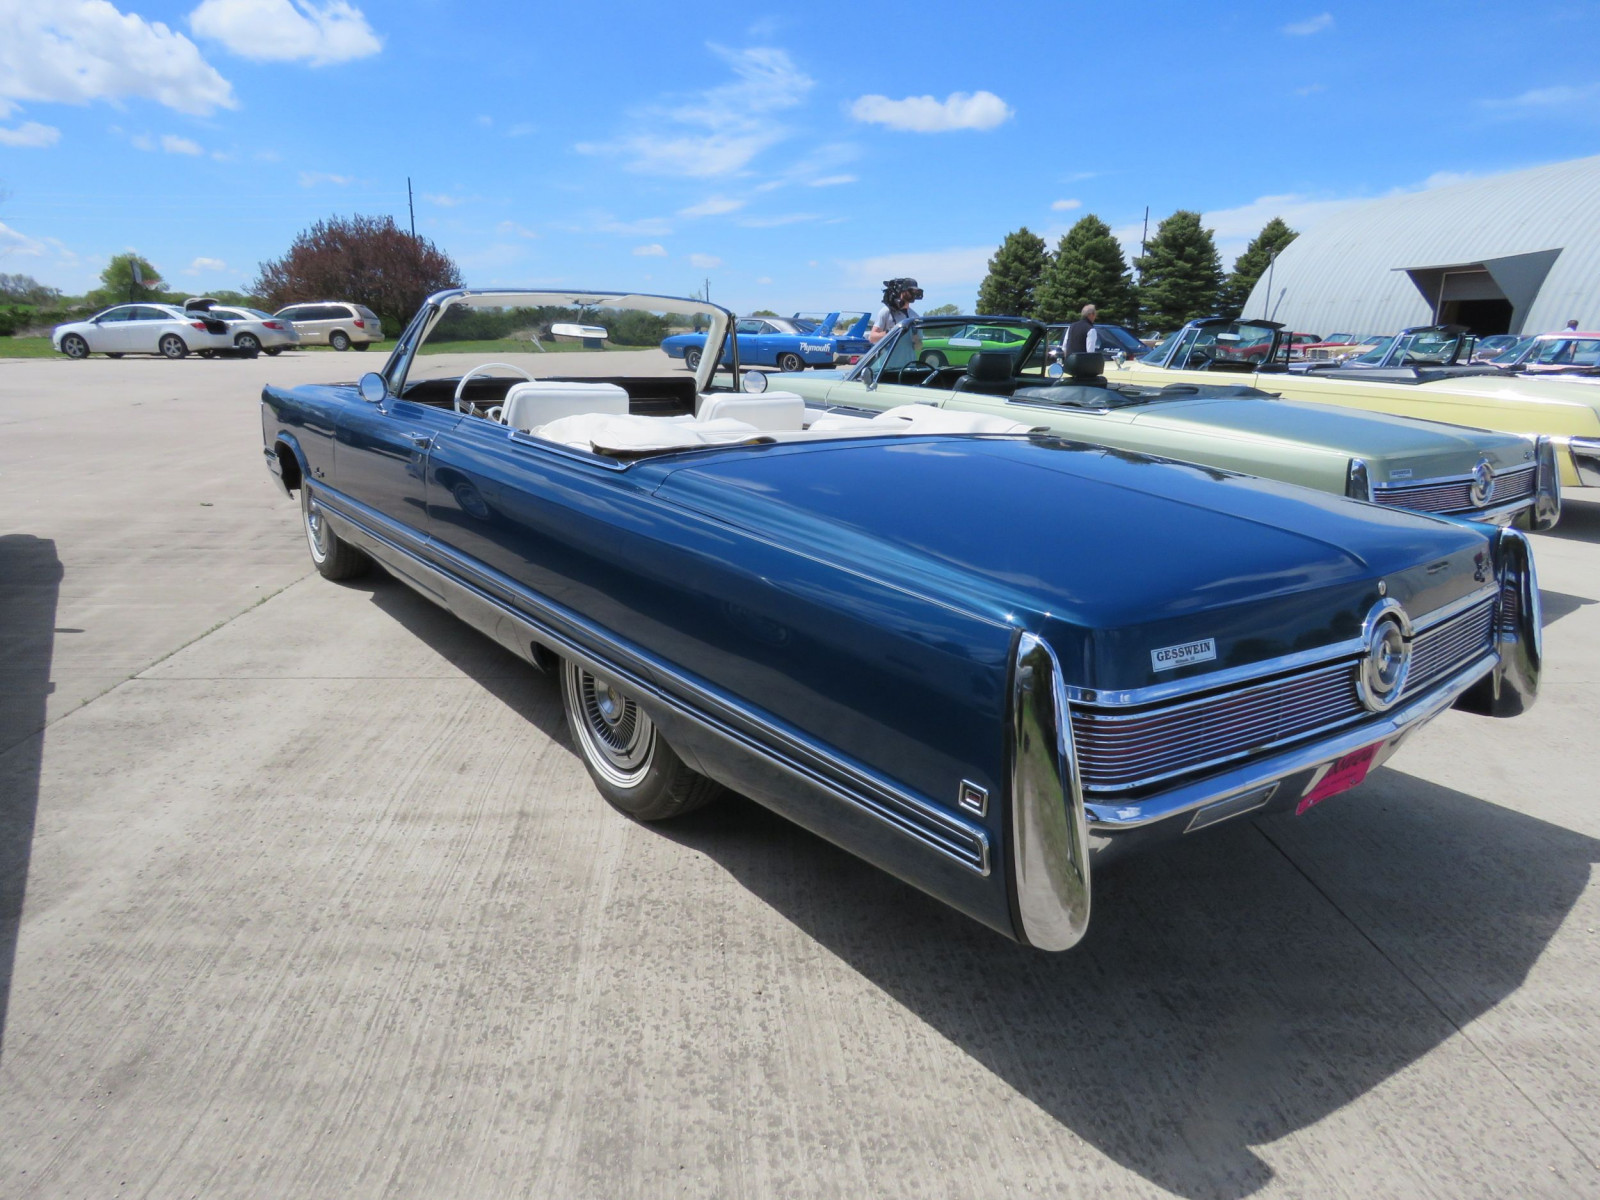 1968 Chrysler Imperial Crown Convertible - Image 7